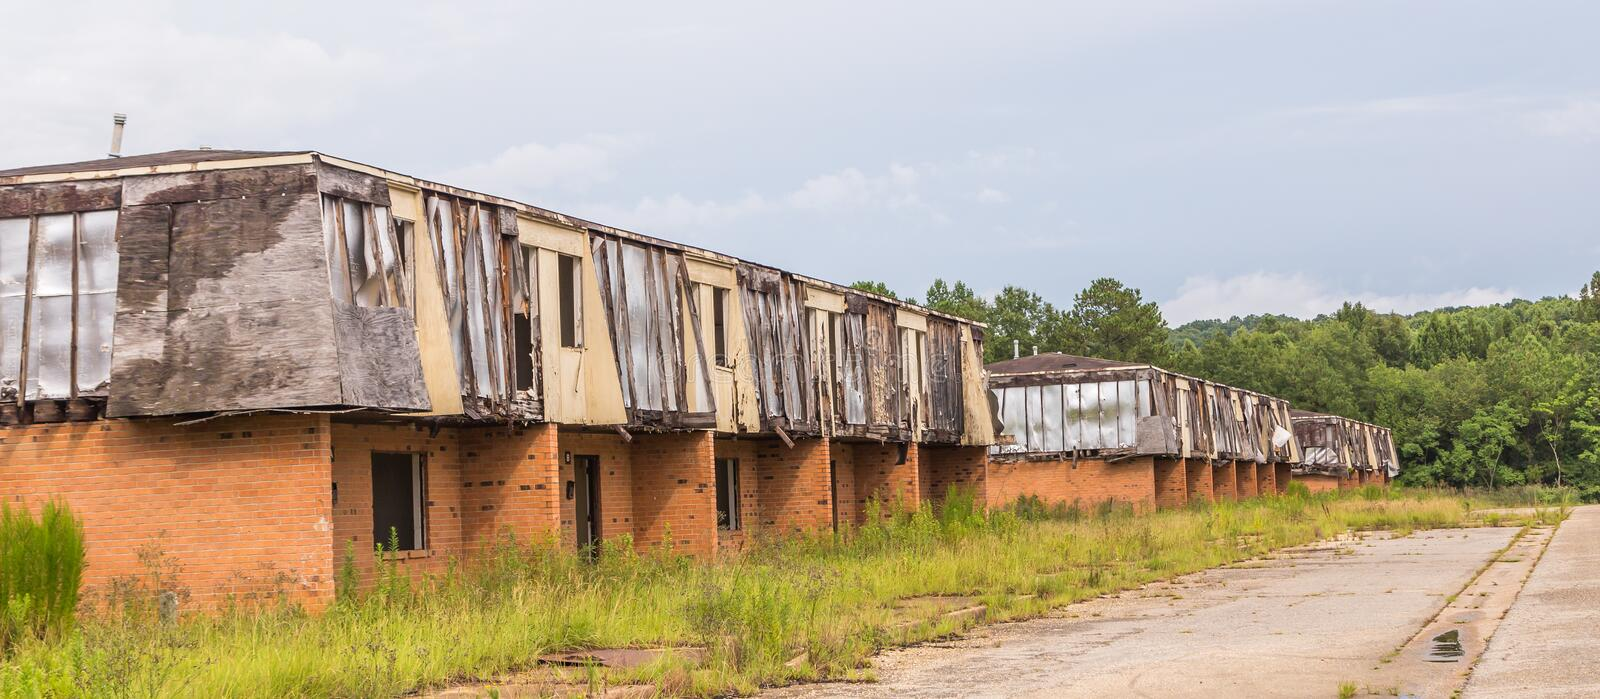 Skeleton Structures of Old Urban Projects stock photo